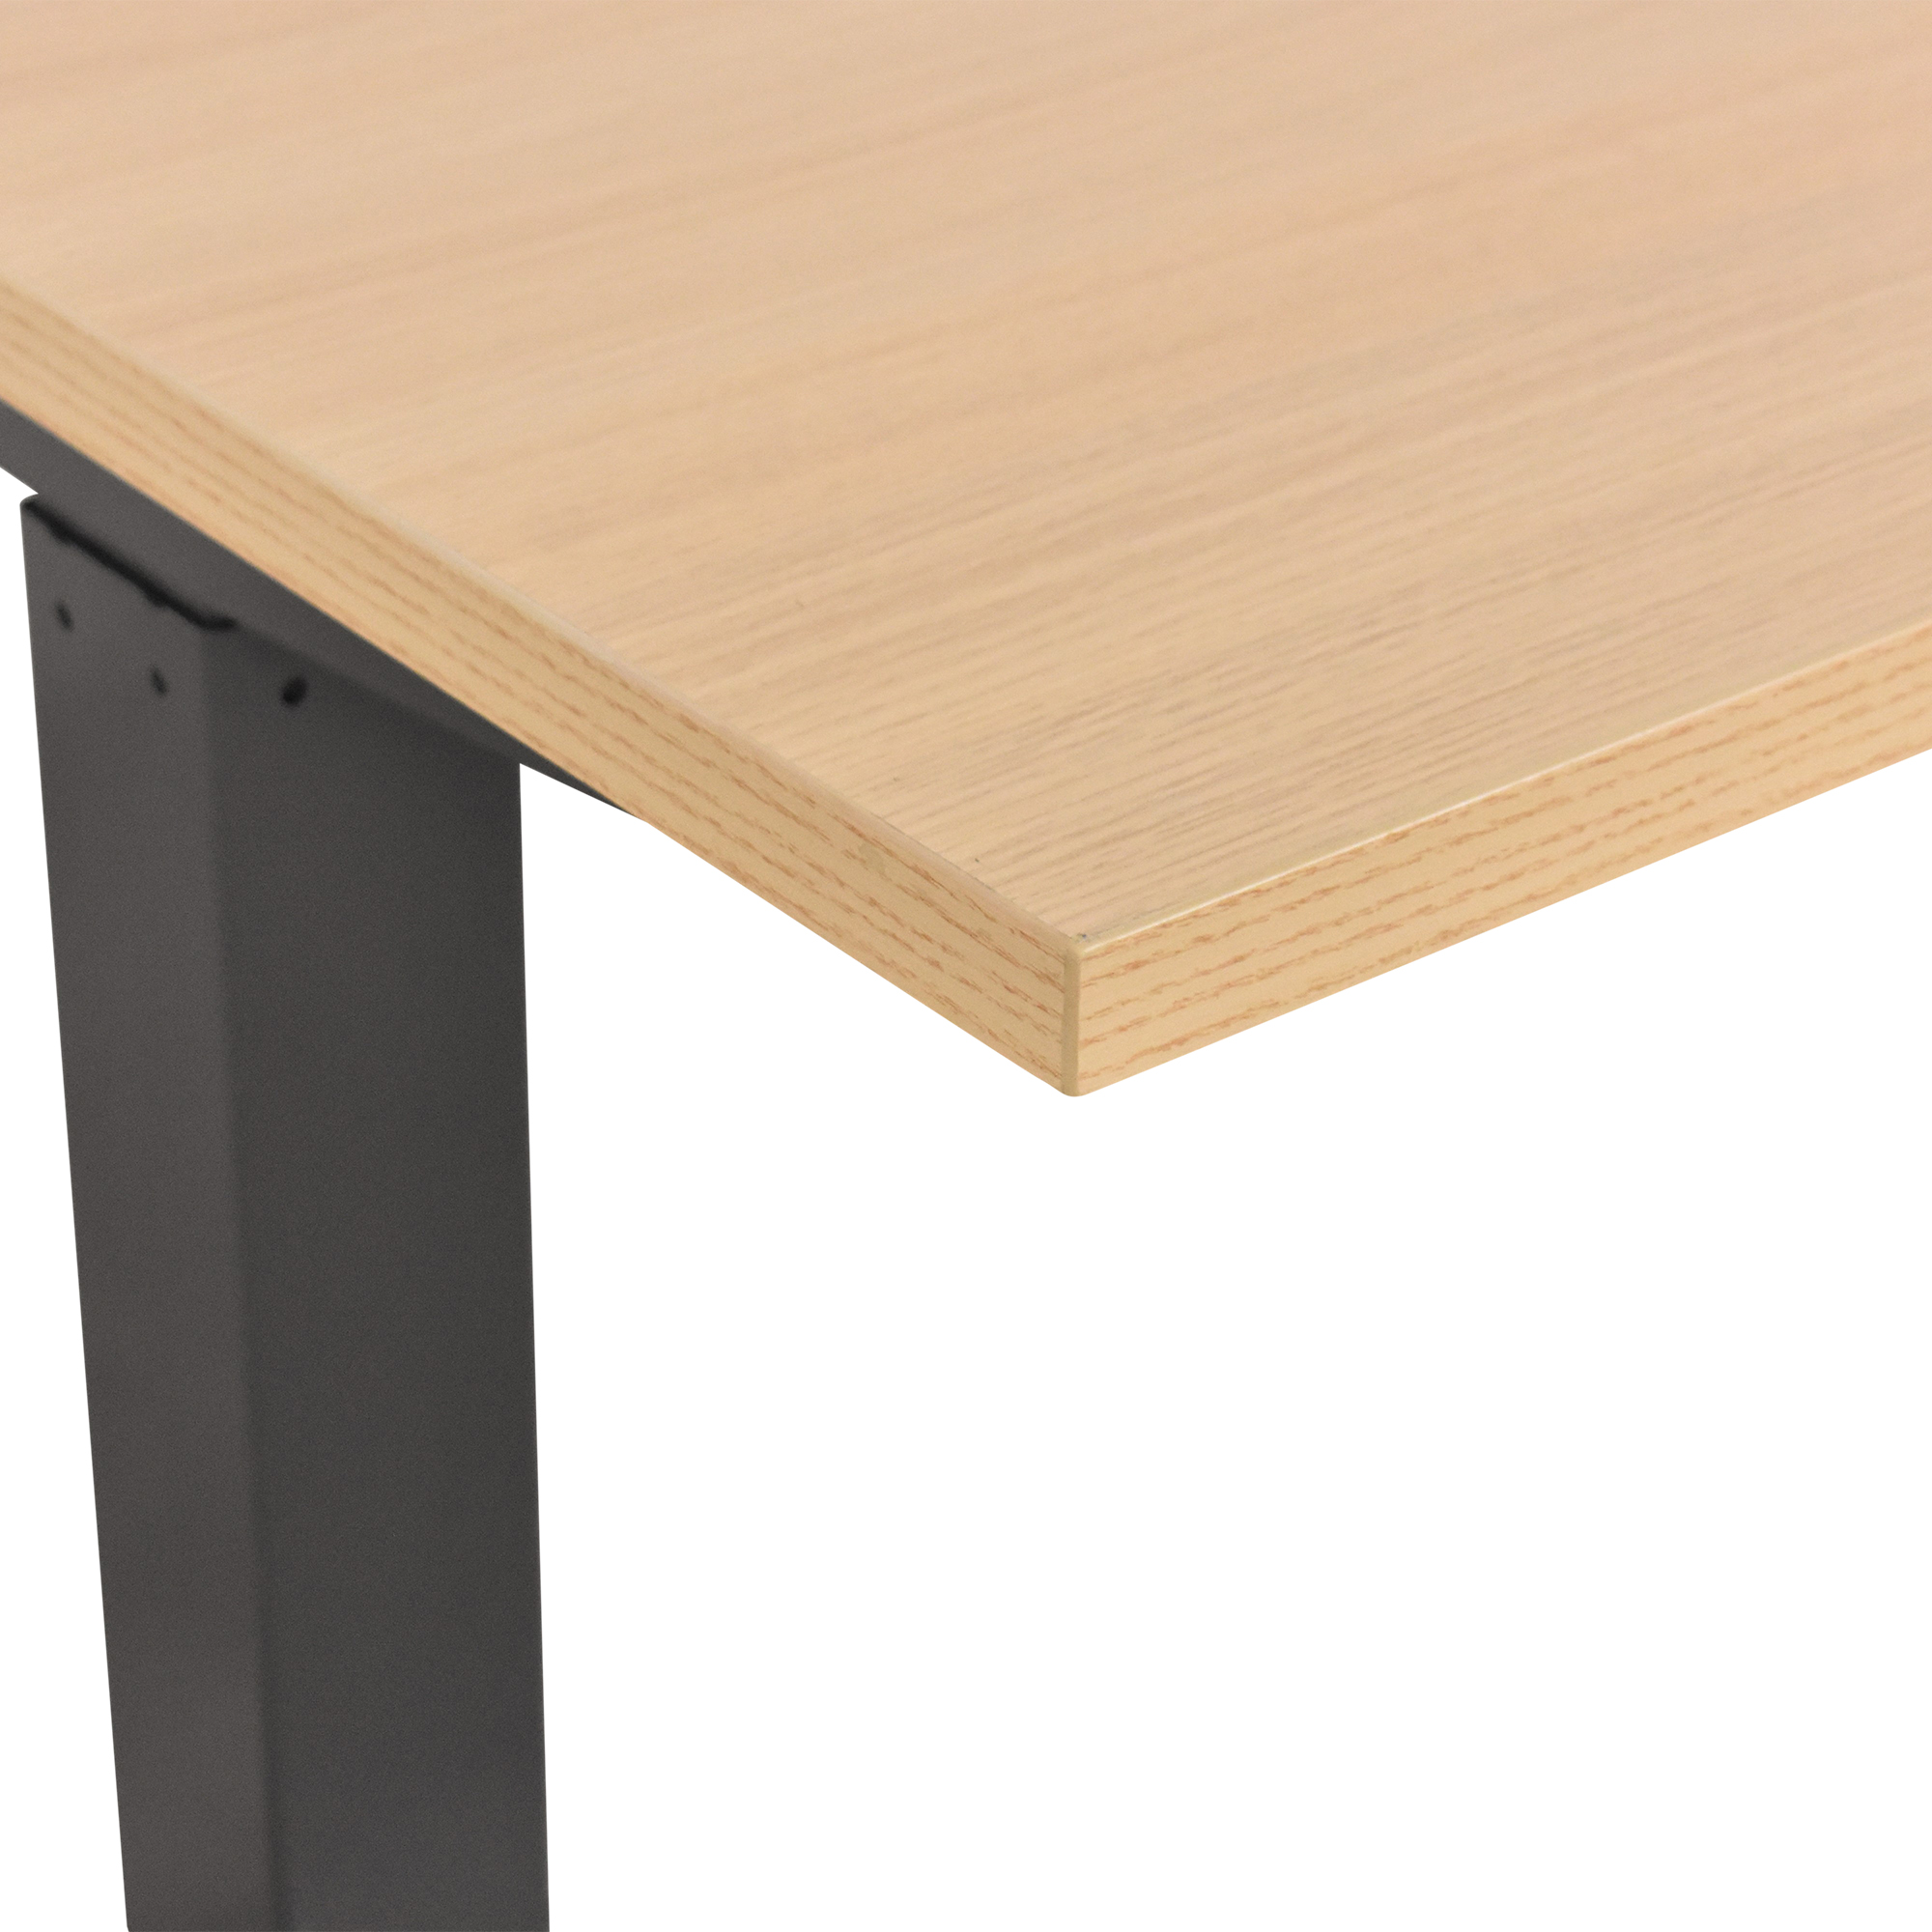 Poppin Poppin Series L Adjustable Height Desk ct